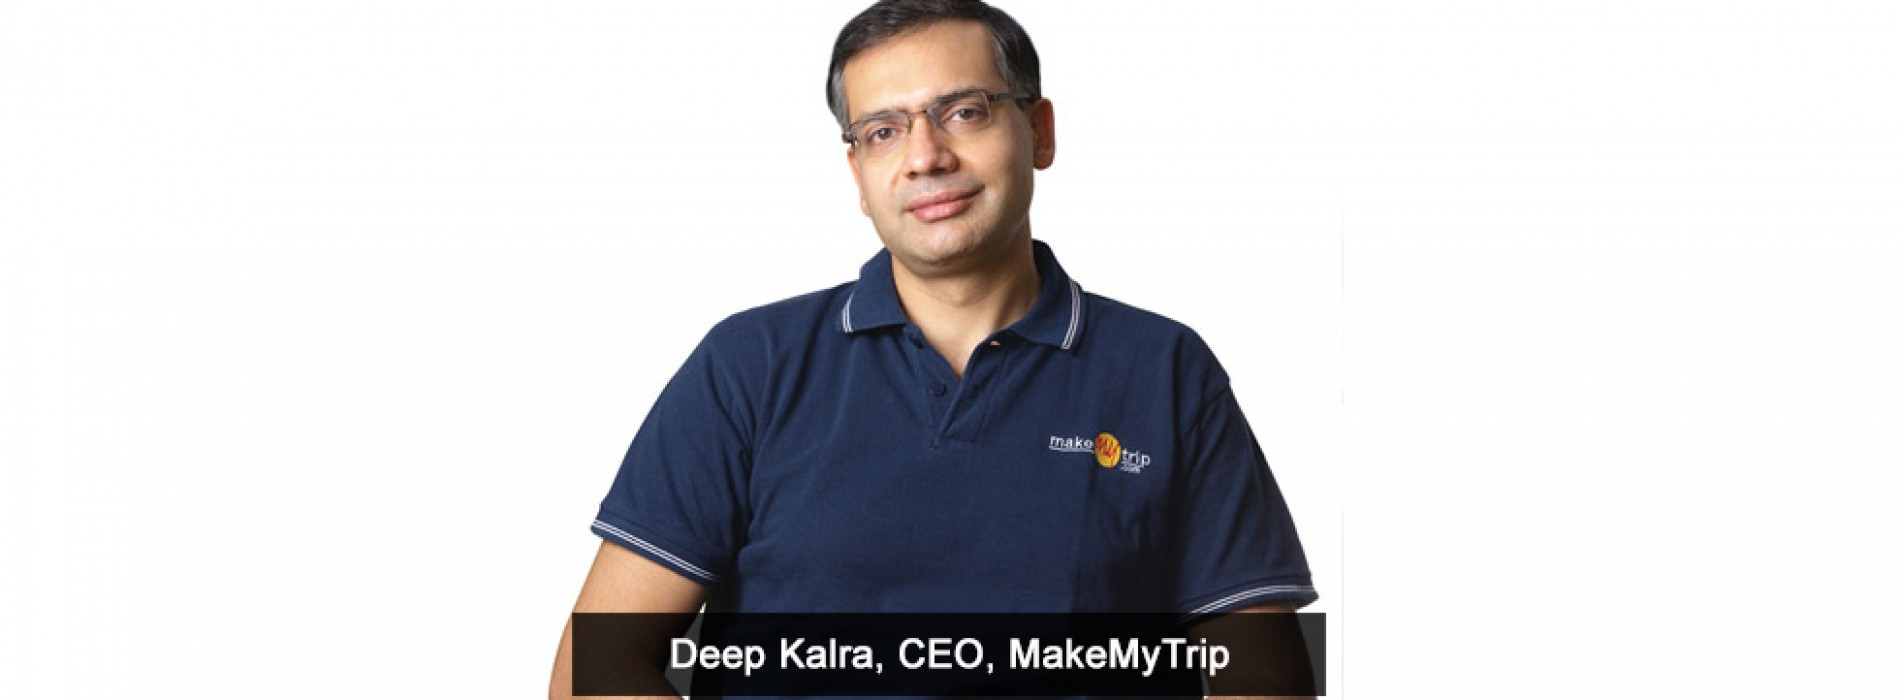 MMT only OTA in the world working to reduce carbon footprint: Deep Kalra